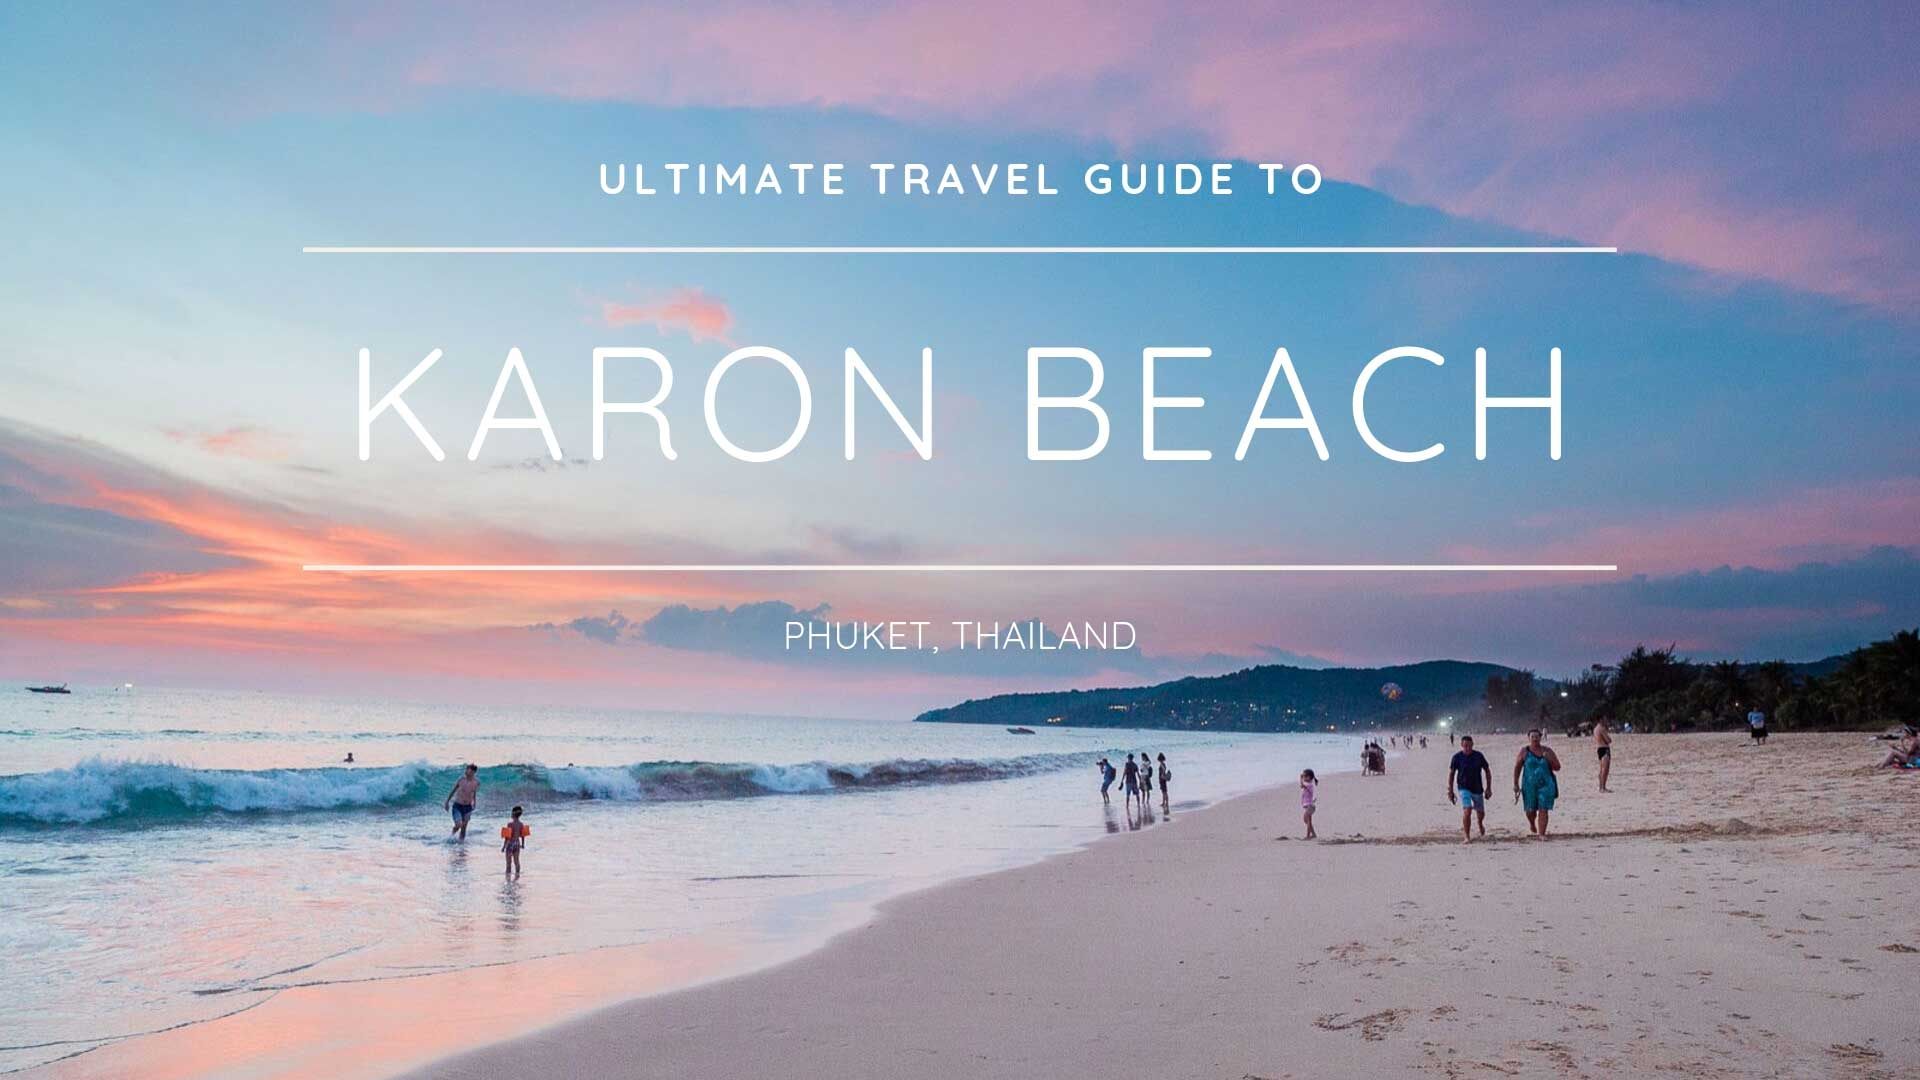 Travel Guide To Karon Beach, Phuket